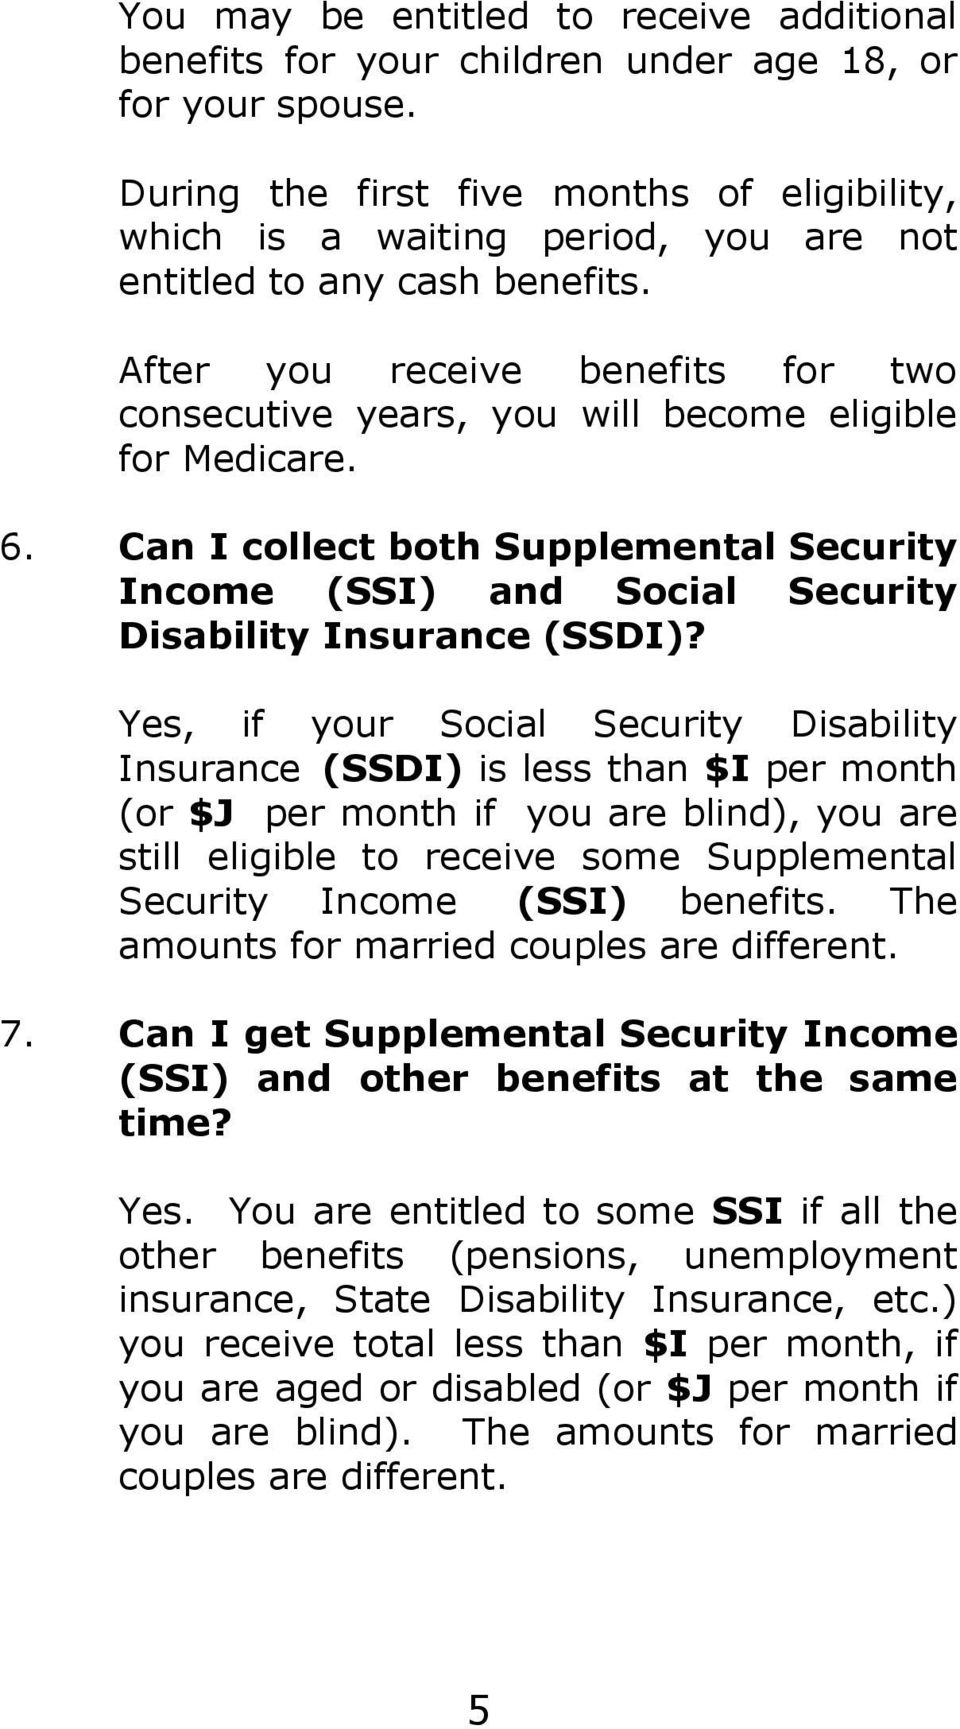 After you receive benefits for two consecutive years, you will become eligible for Medicare. 6. Can I collect both Supplemental Security Income (SSI) and Social Security Disability Insurance (SSDI)?